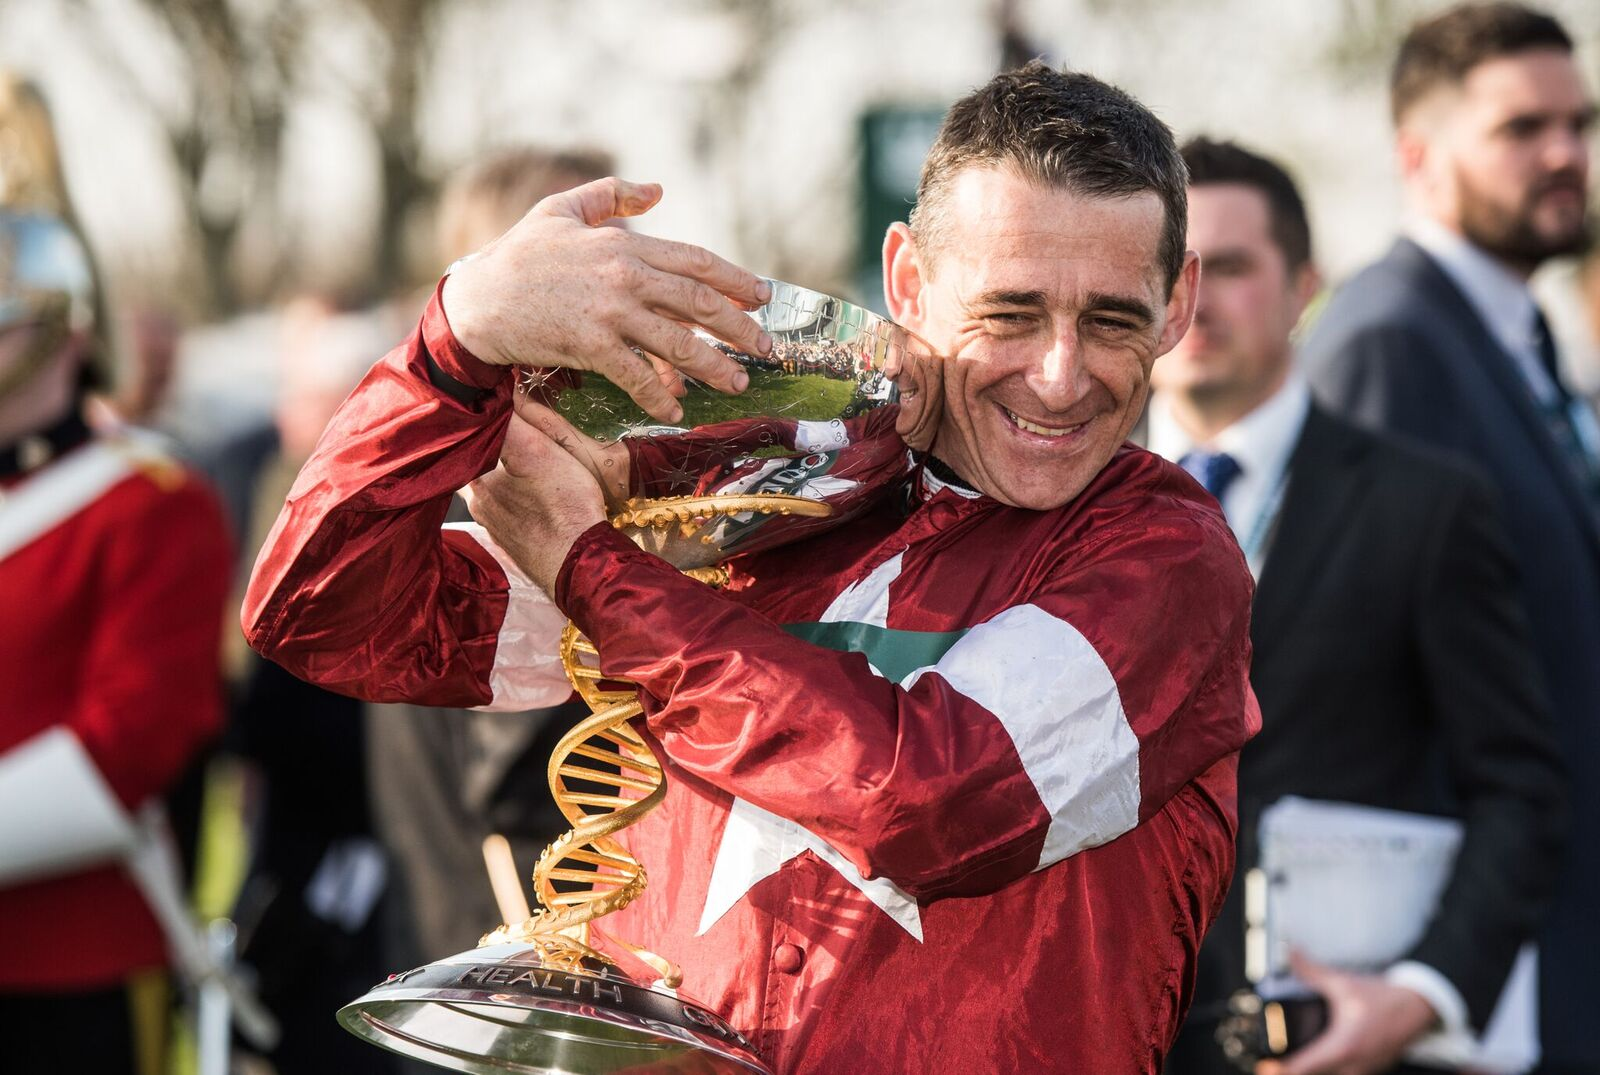 Davy Russell hugging the trophy after winning the Randox Health Grand National 2018, image by bradleyquinn.com - for more details see May 2018 Blog